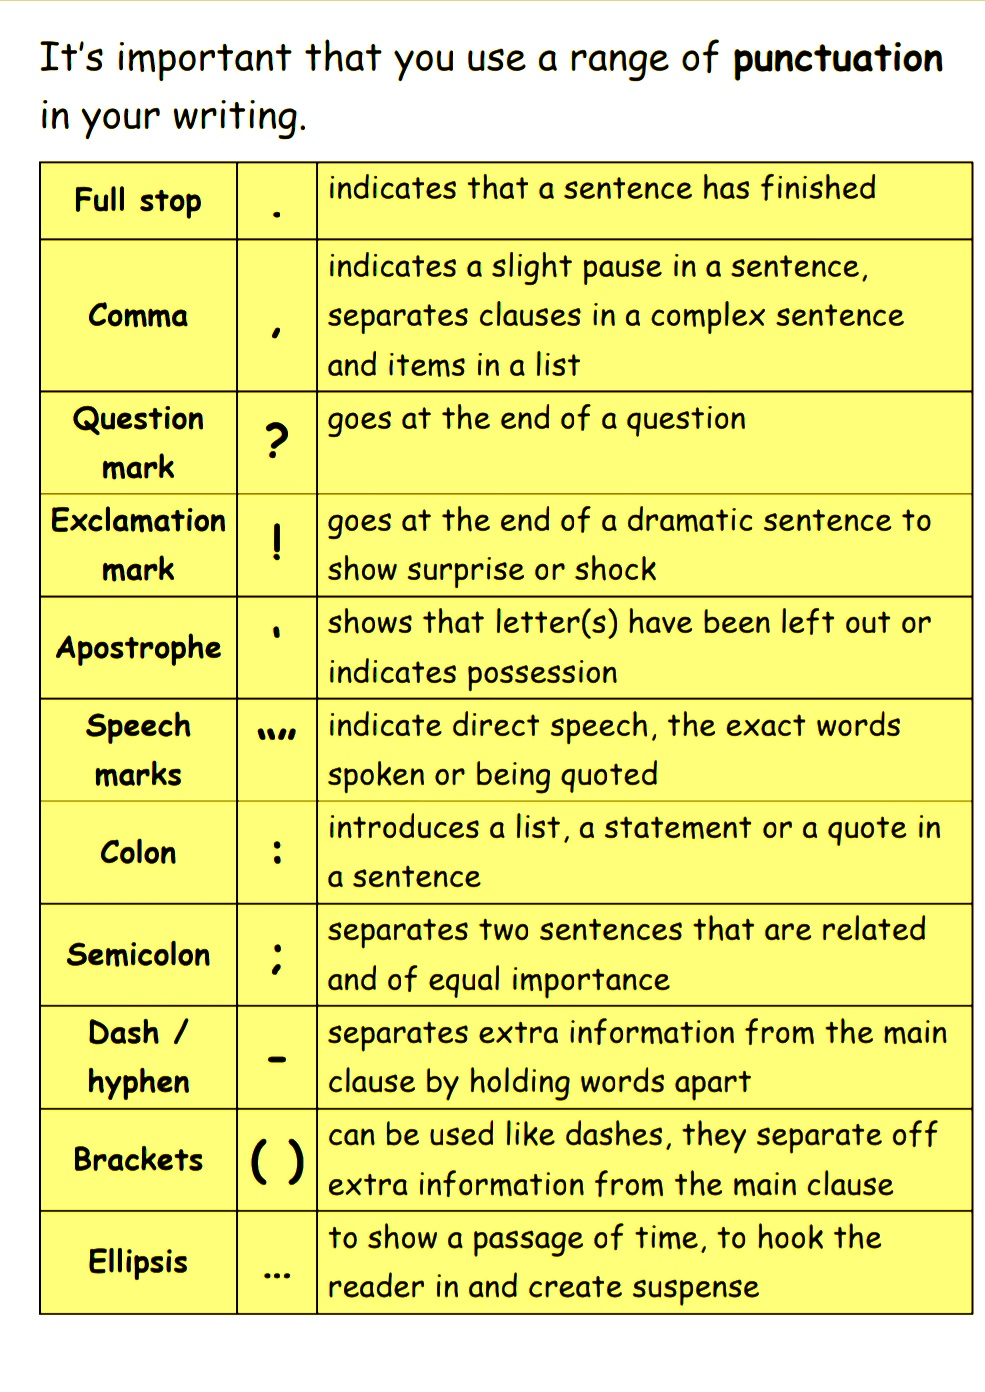 Punctuation: Definition, Types and Usage Rules 3